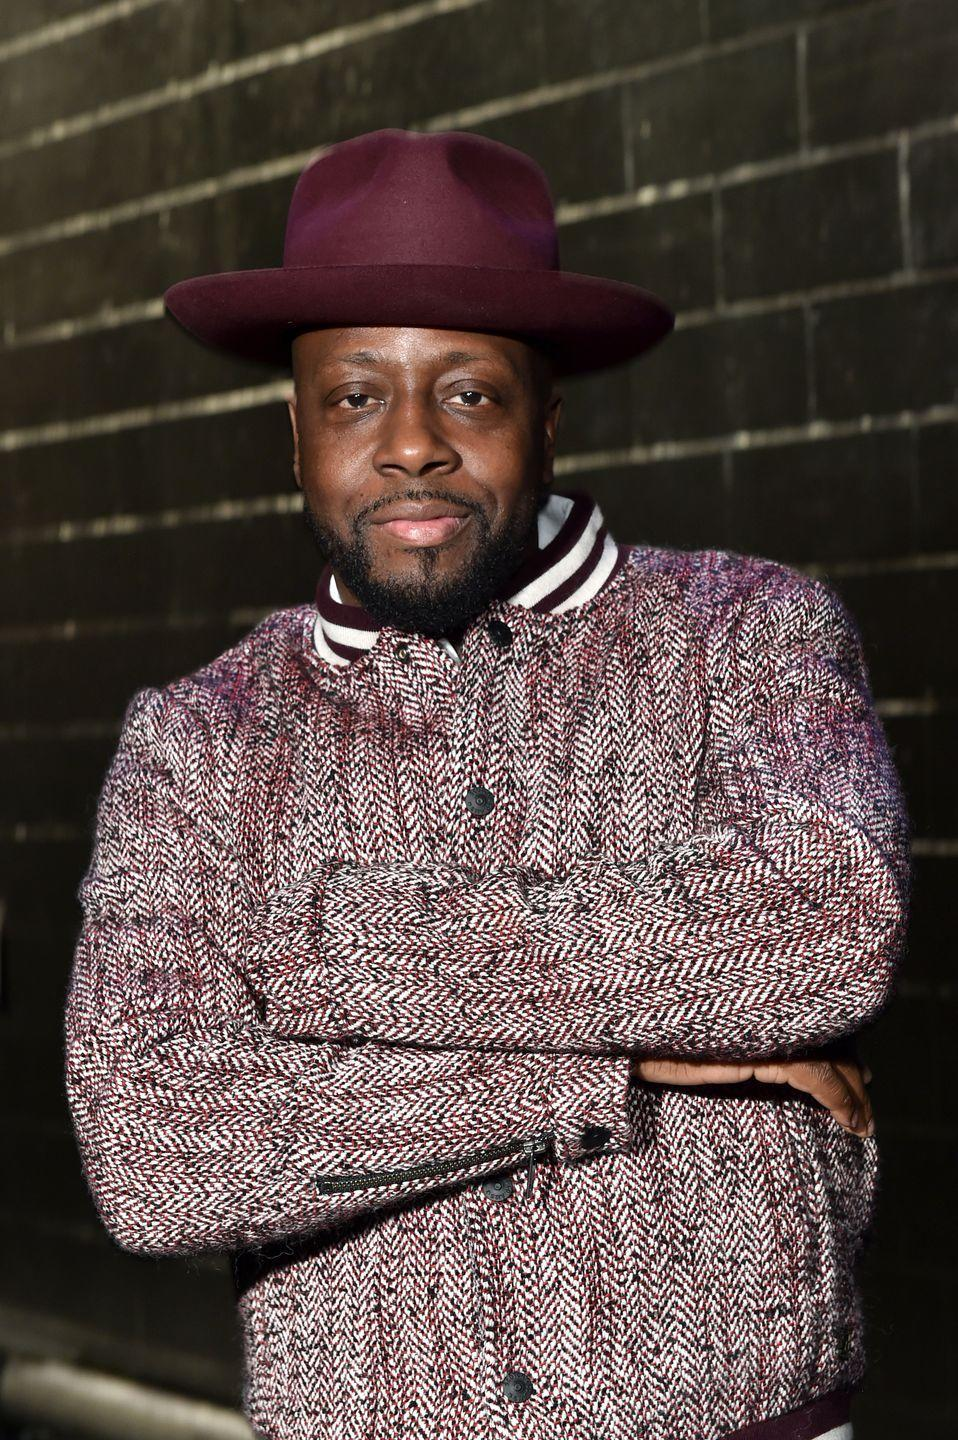 """<p>Entertainer Wyclef Jean announced that he would be running for the Haitian presidency shortly after the 2010 earthquake devastated the country. However, his lofty aspirations were cut short after Haiti's electoral council denied his bid. No official reason was given, but Jean believes it was because he didn't meet the five-year residency requirement. </p><p>While the singer wasn't happy about his disqualification, he urged his supporters to accept the situation. """"We must all honor the memories of those we've lost—whether in the earthquake, or at any time—by responding peacefully and responsibly to this disappointment,"""" said Jean in a <a href=""""https://www.aljazeera.com/news/americas/2010/08/20108211031447758.html"""" rel=""""nofollow noopener"""" target=""""_blank"""" data-ylk=""""slk:public statement"""" class=""""link rapid-noclick-resp"""">public statement</a>. </p>"""